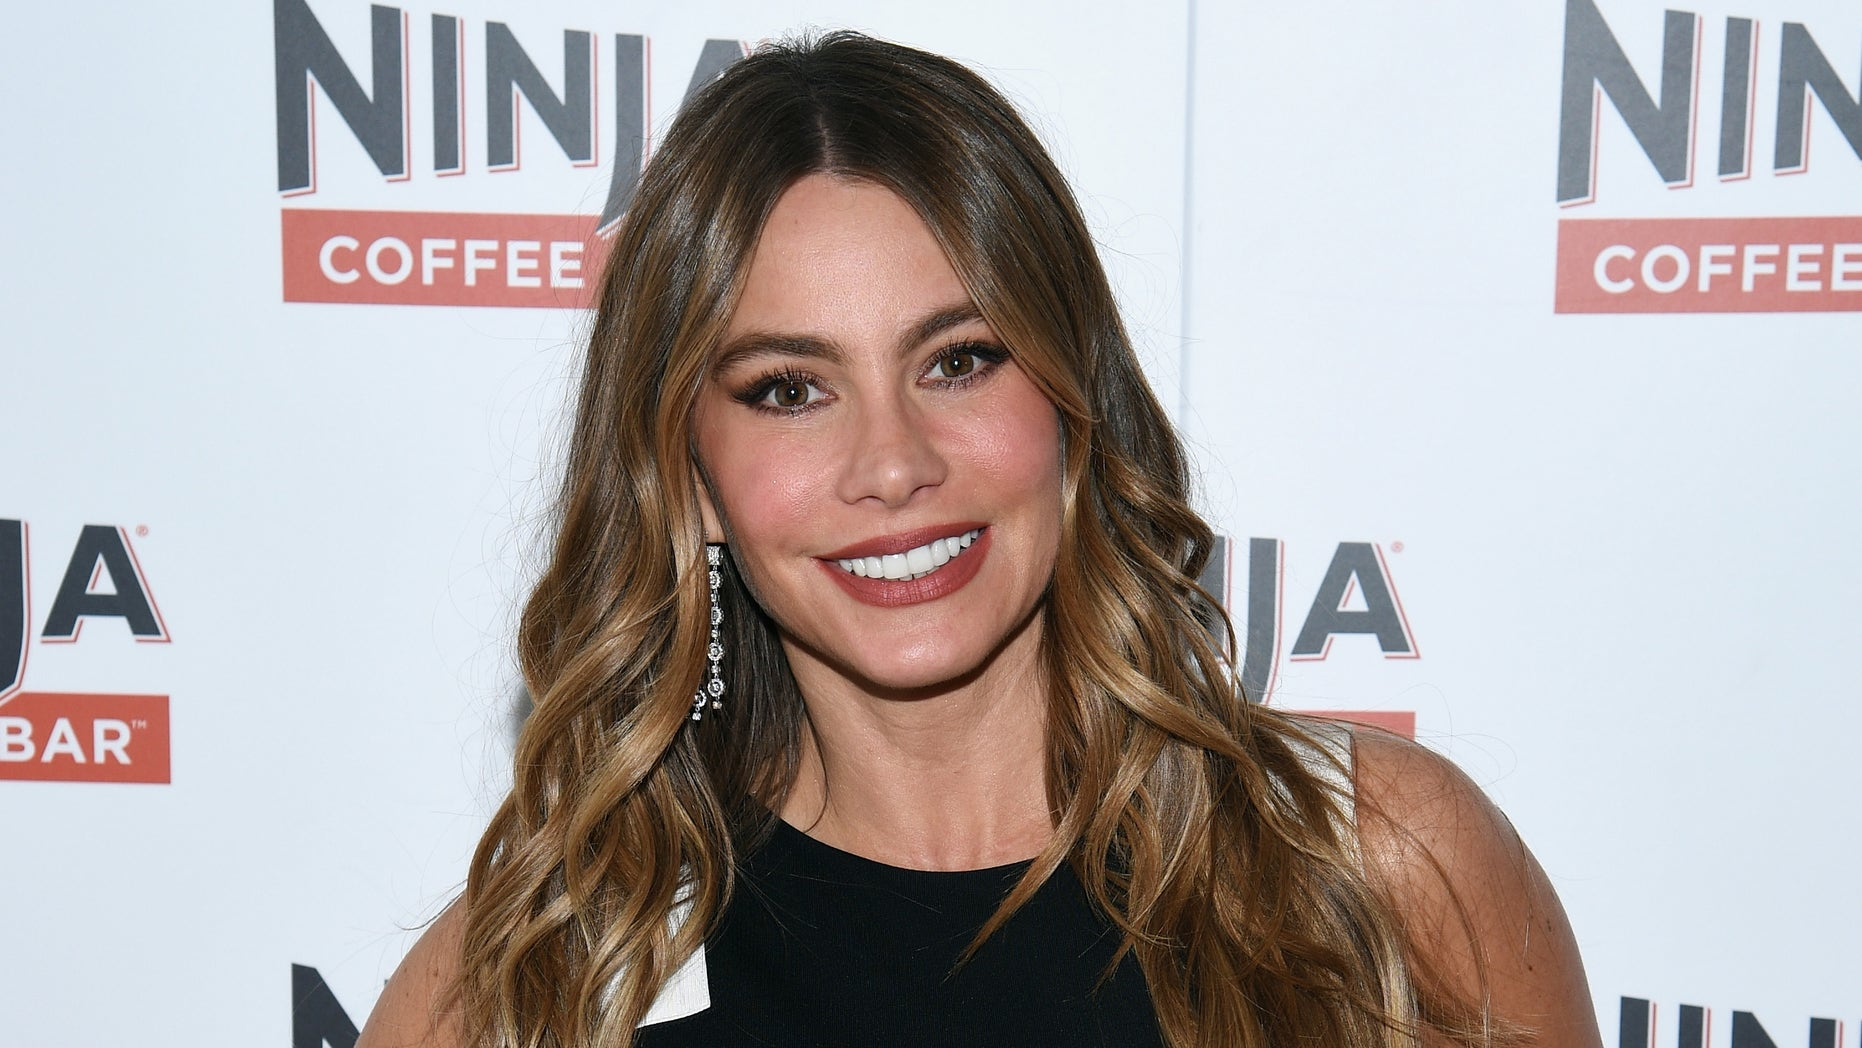 Sofia Vergara in a September 23, 2015 file photo.